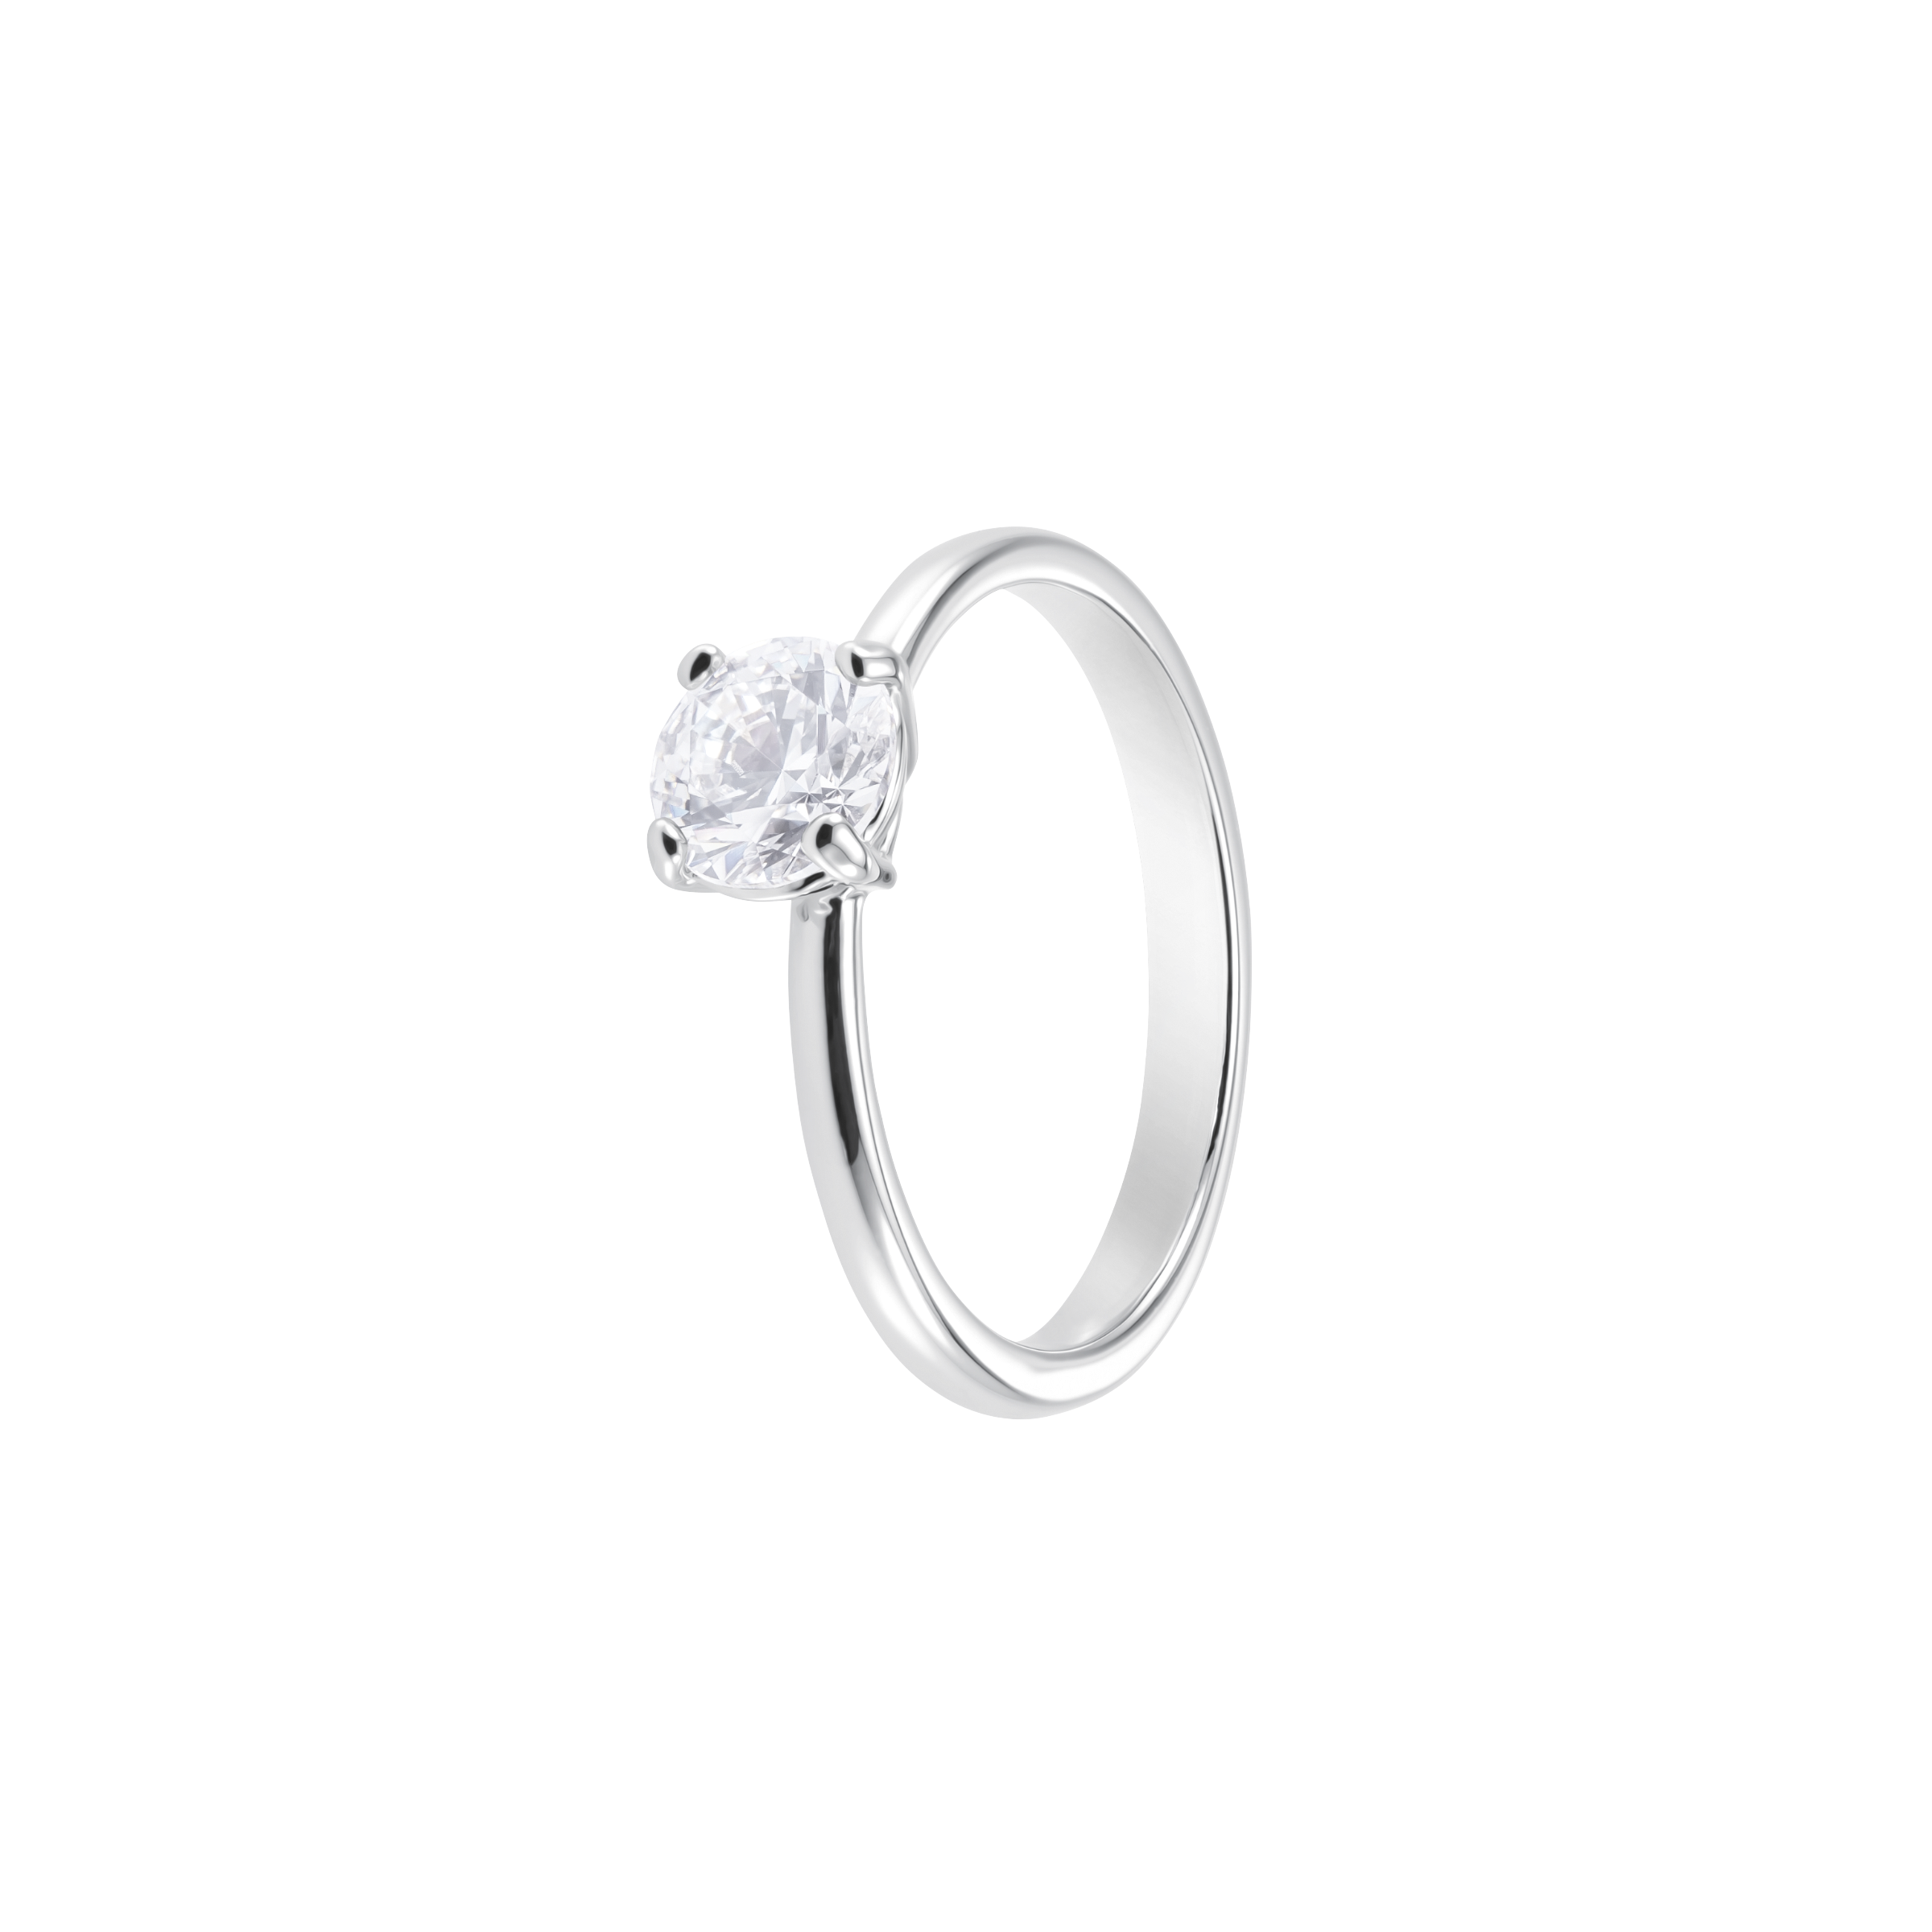 Attract Round Ring, White, Rhodium Plating